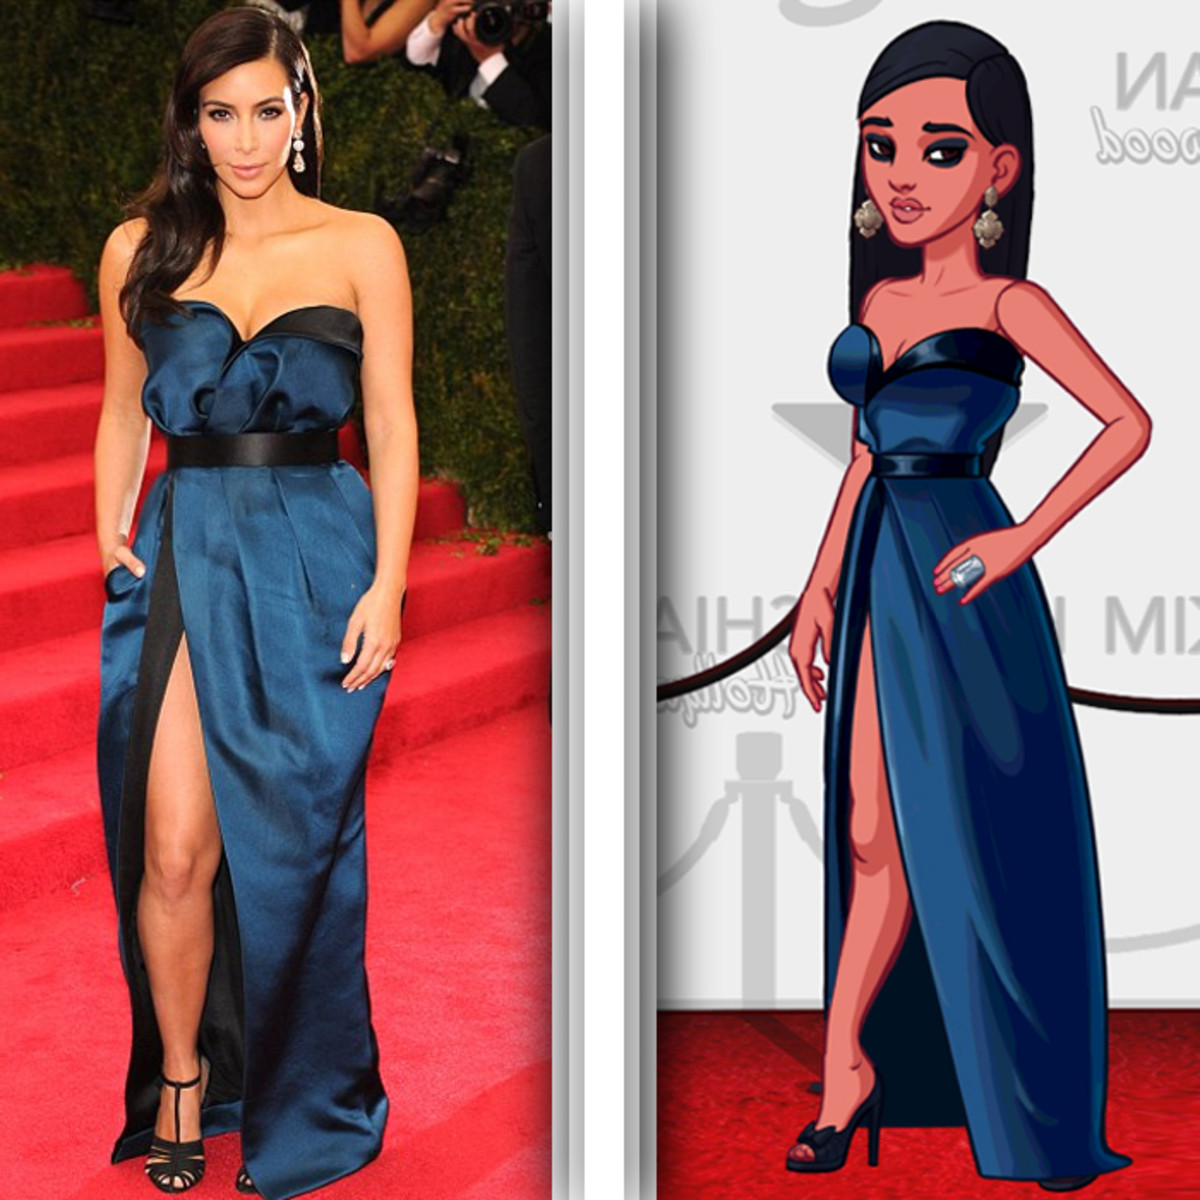 Kim Kardashian wears an extravagant blue gown on the red carpet